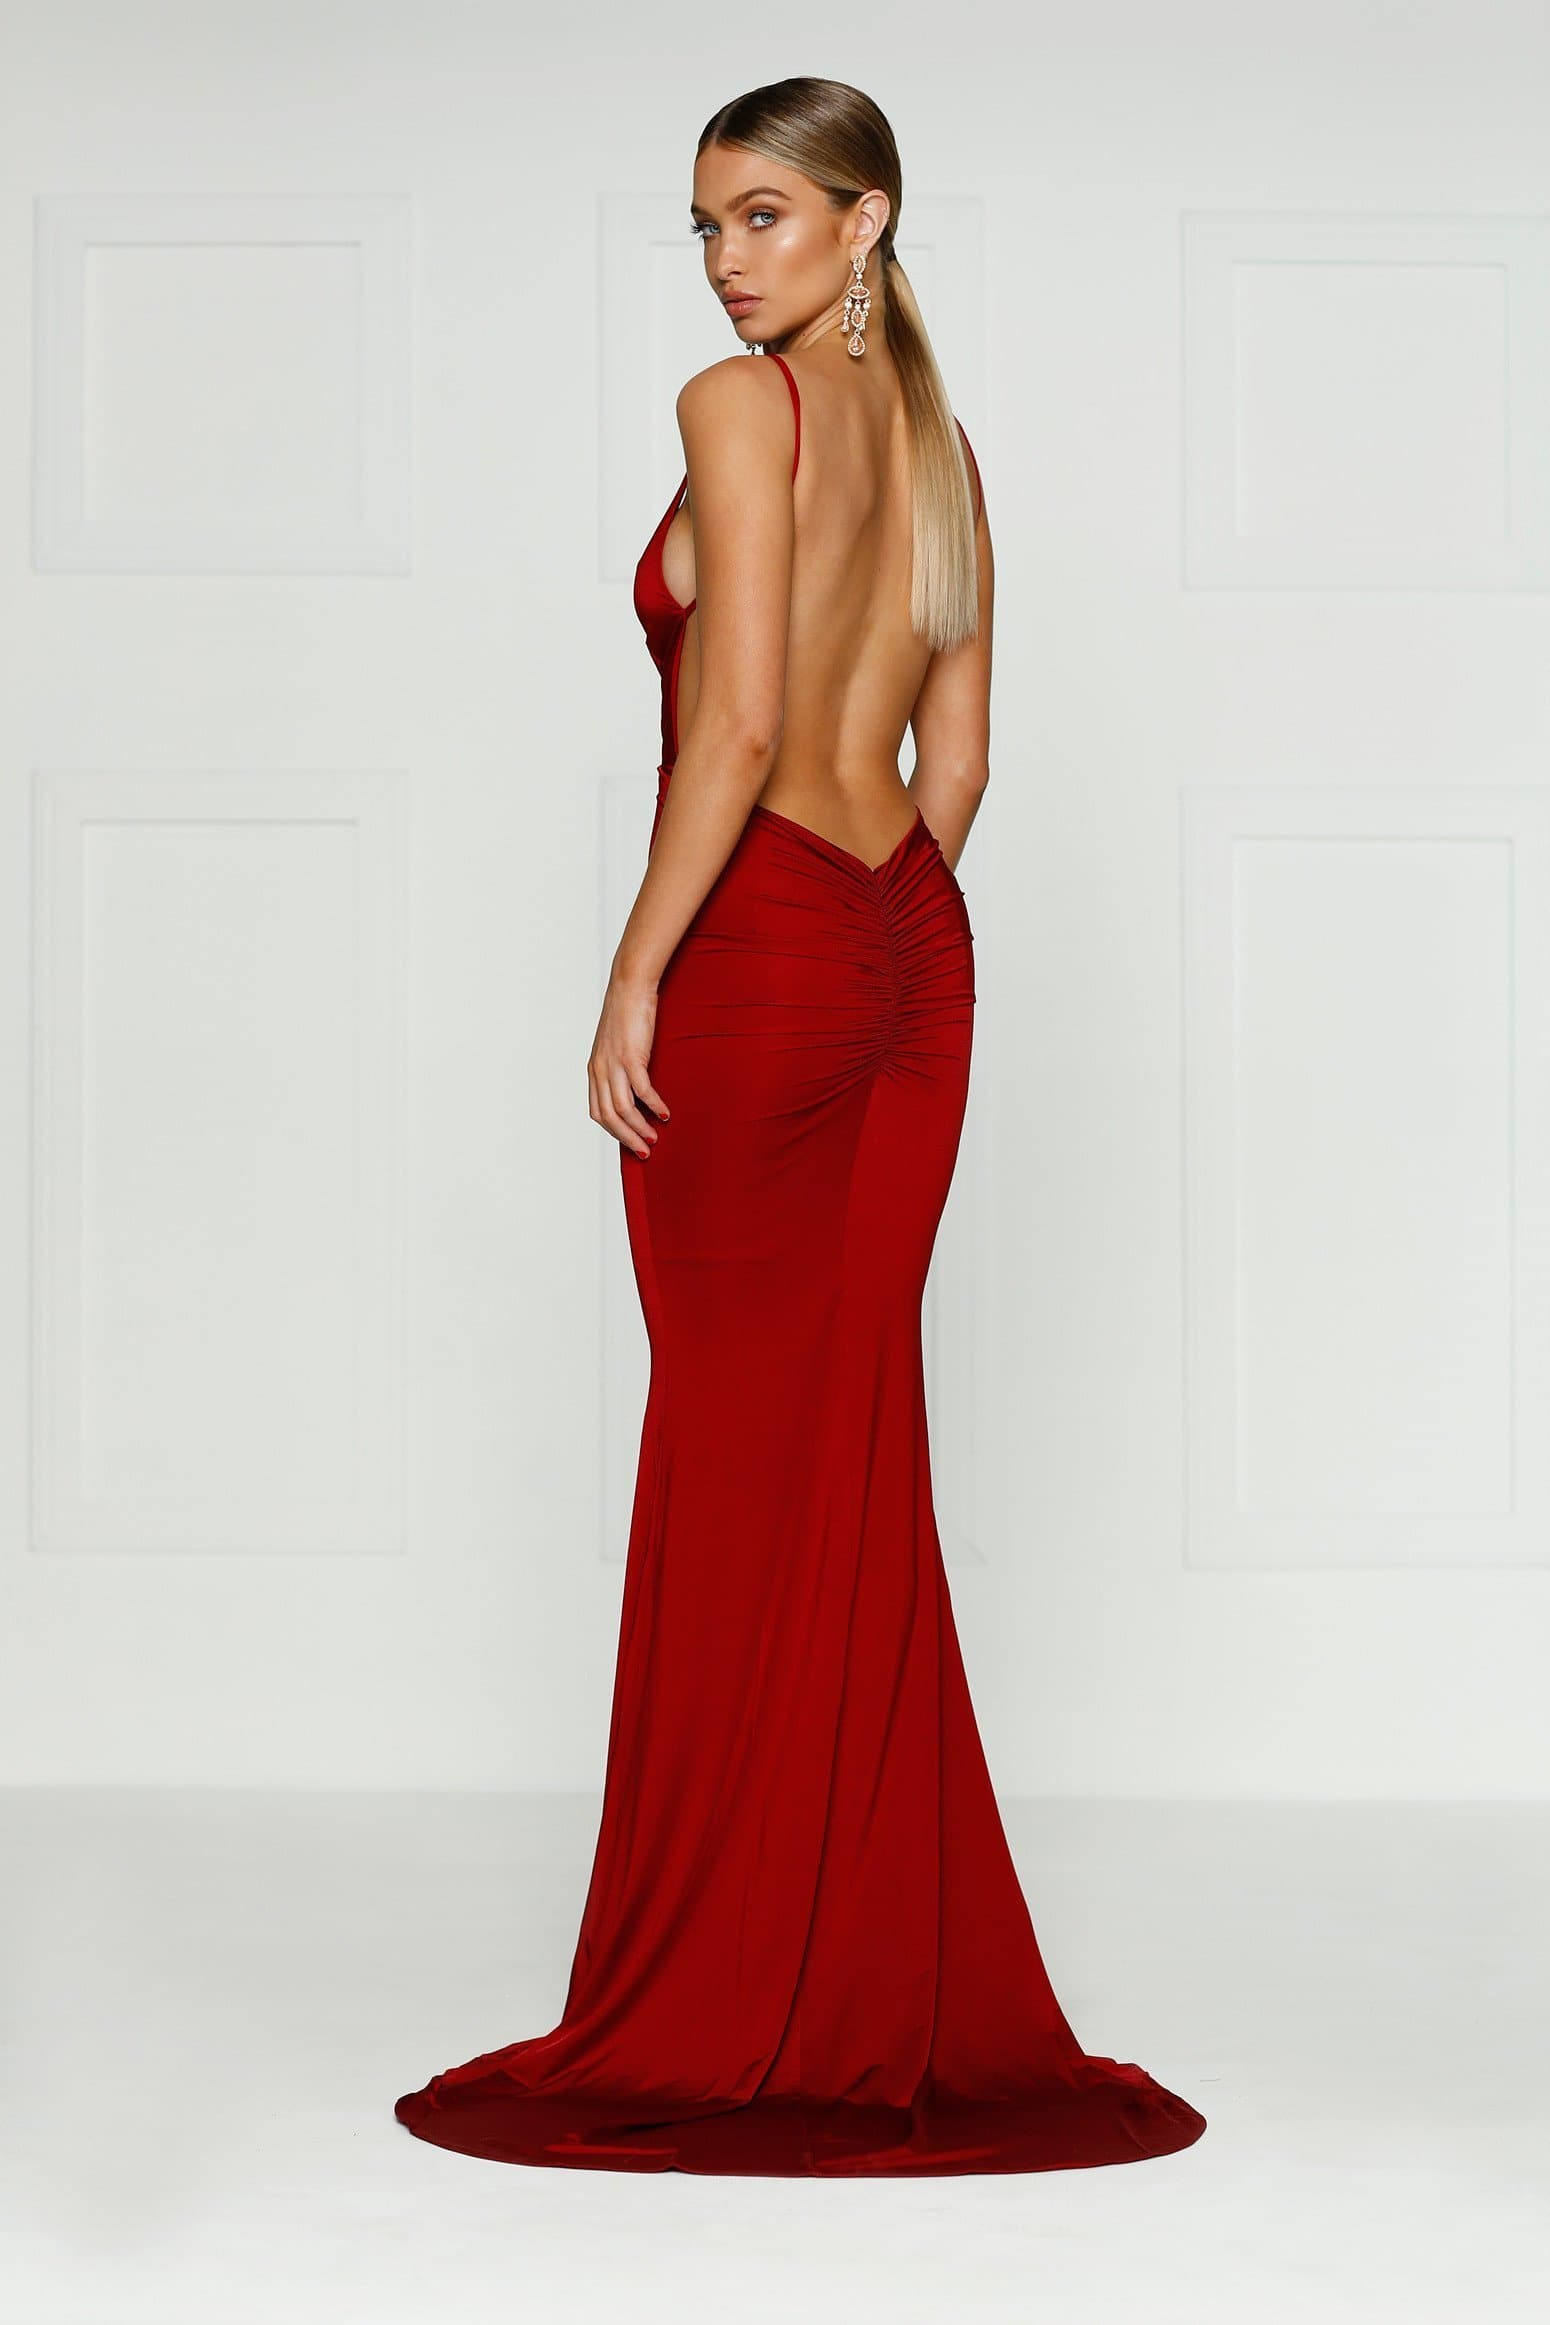 Selina Gown - Wine Red Jersey V Neck Ruched Detail Mermaid Dress